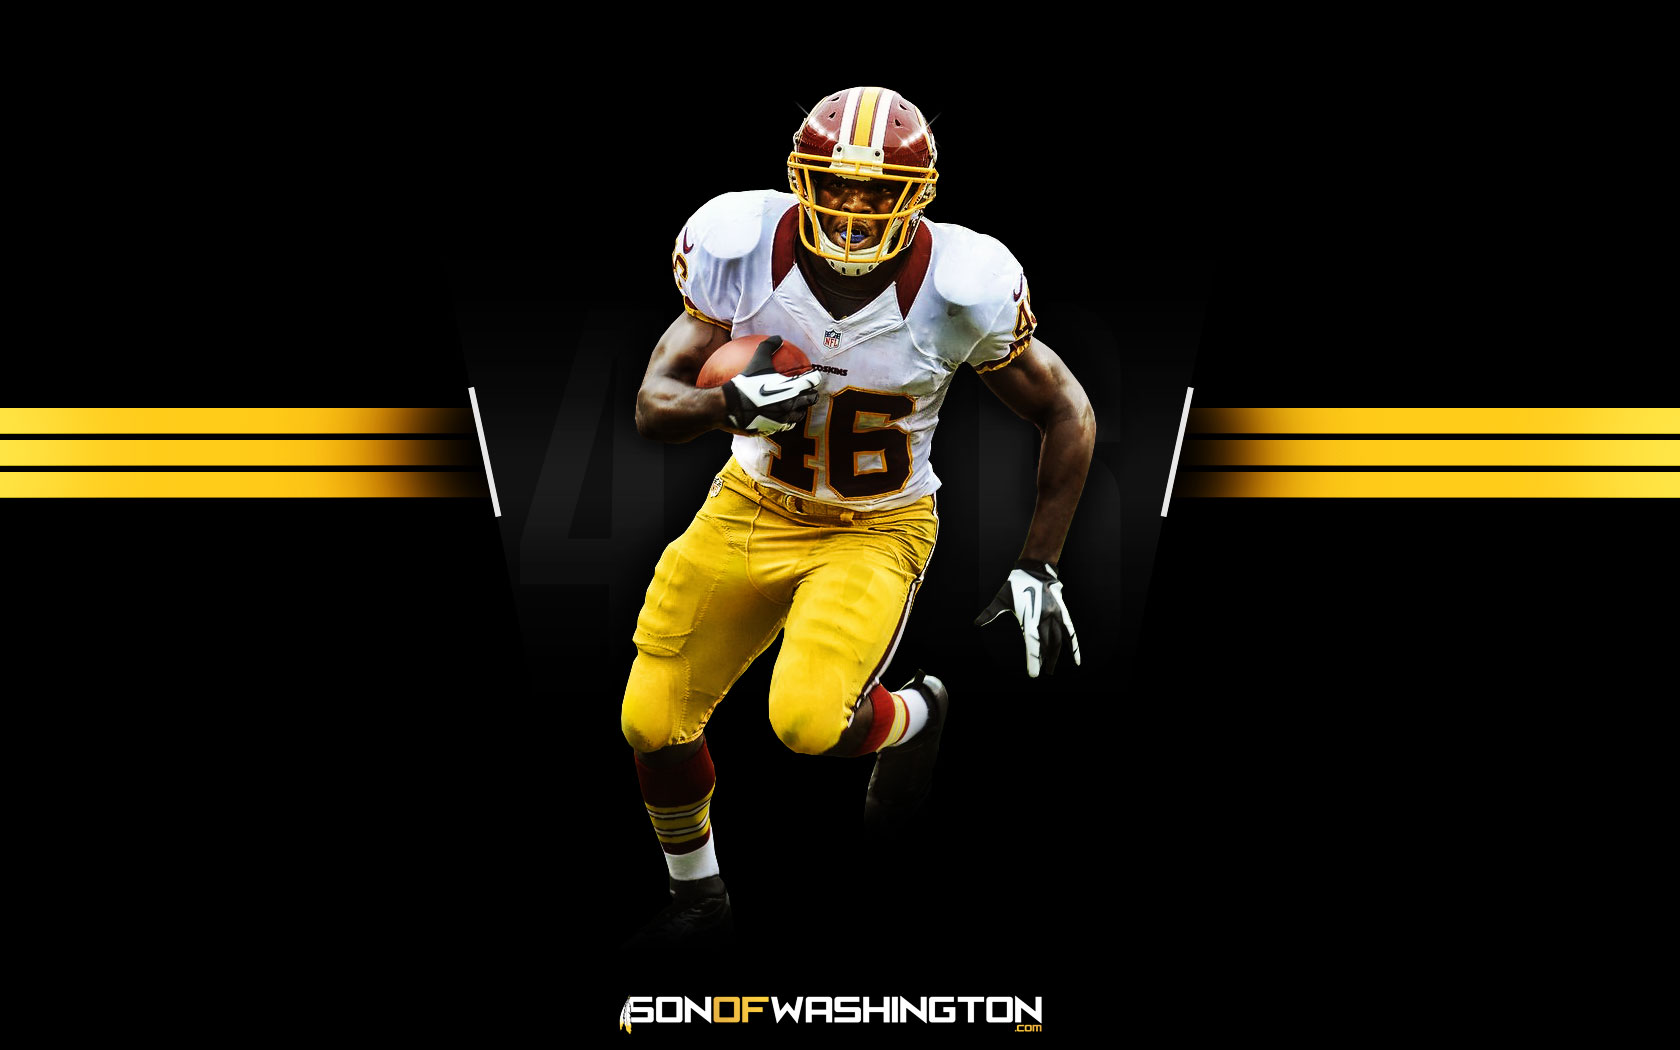 48 Redskins Wallpaper For Android On Wallpapersafari